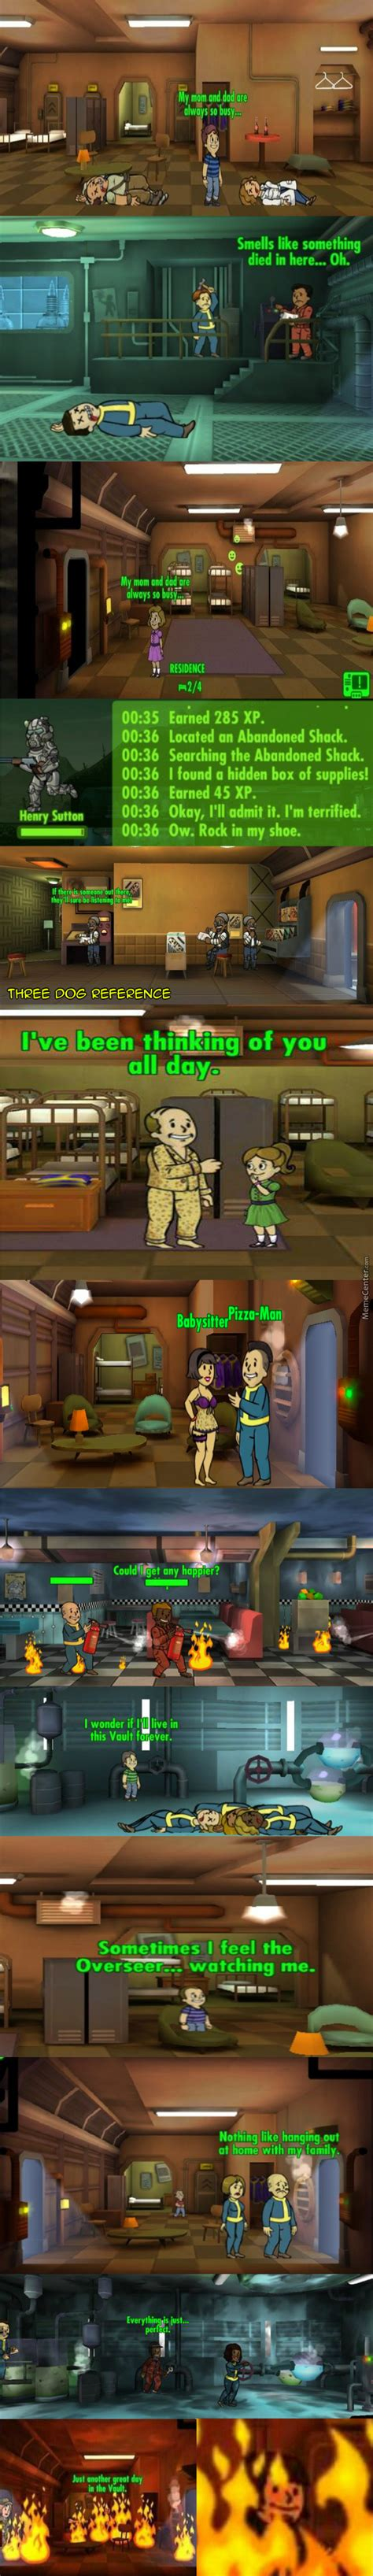 Fallout Shelter Memes - just fallout shelter moments by kr0ltad meme center